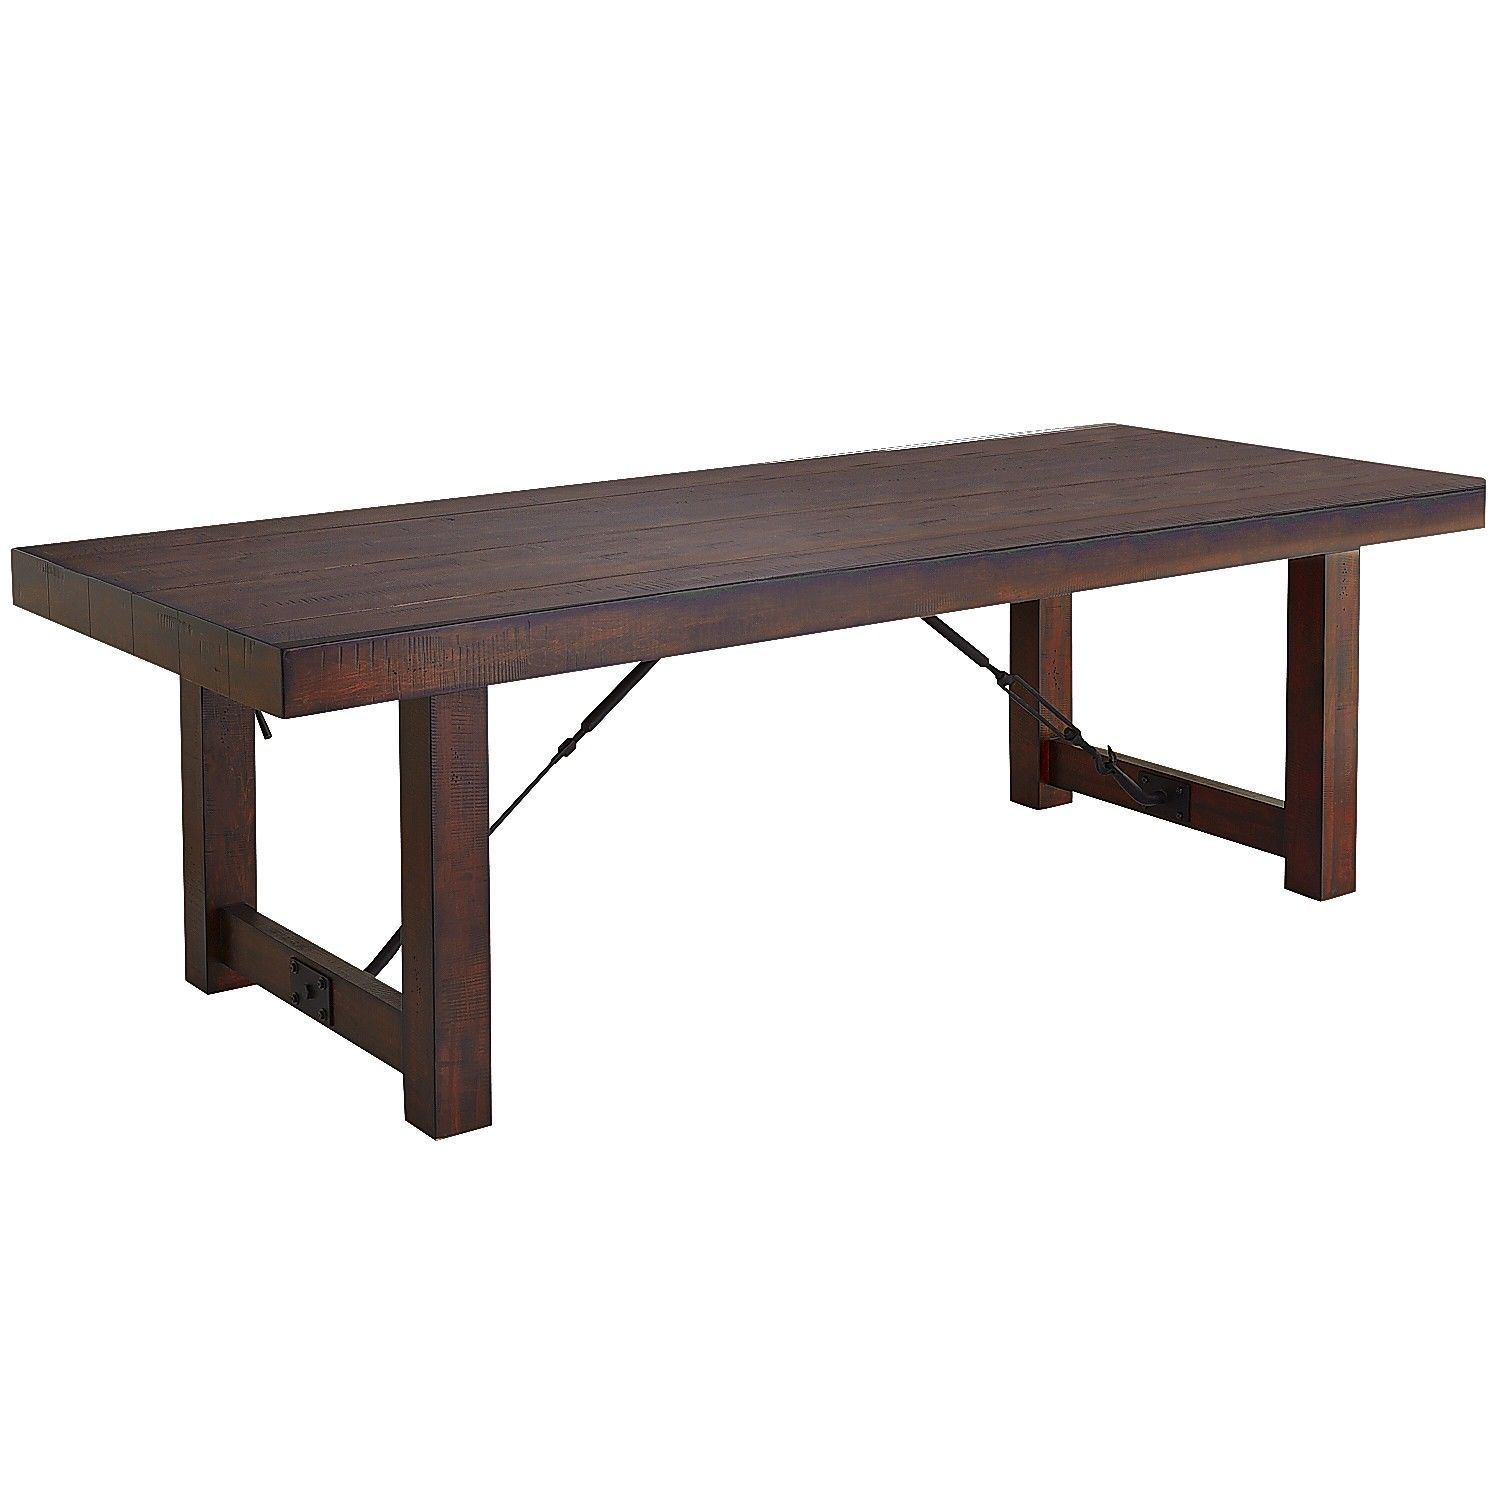 """Pier One Dining Room: Eastwood Tobacco Brown 94.5"""" Dining Table"""